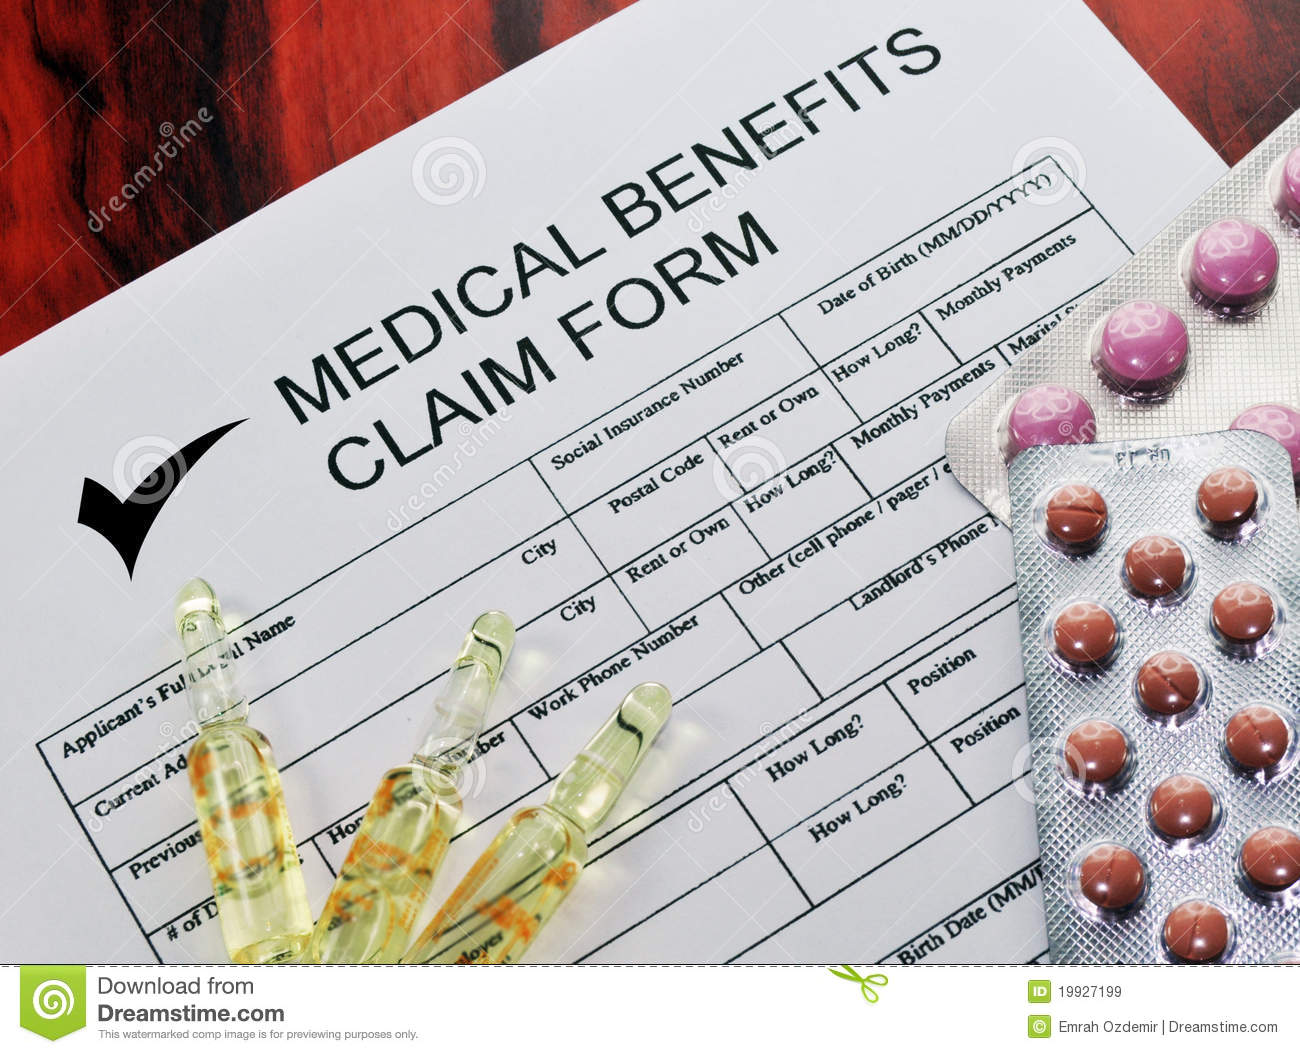 Medical Benefits Claim Form 2 Royalty Free Images Image – Medical Claim Form